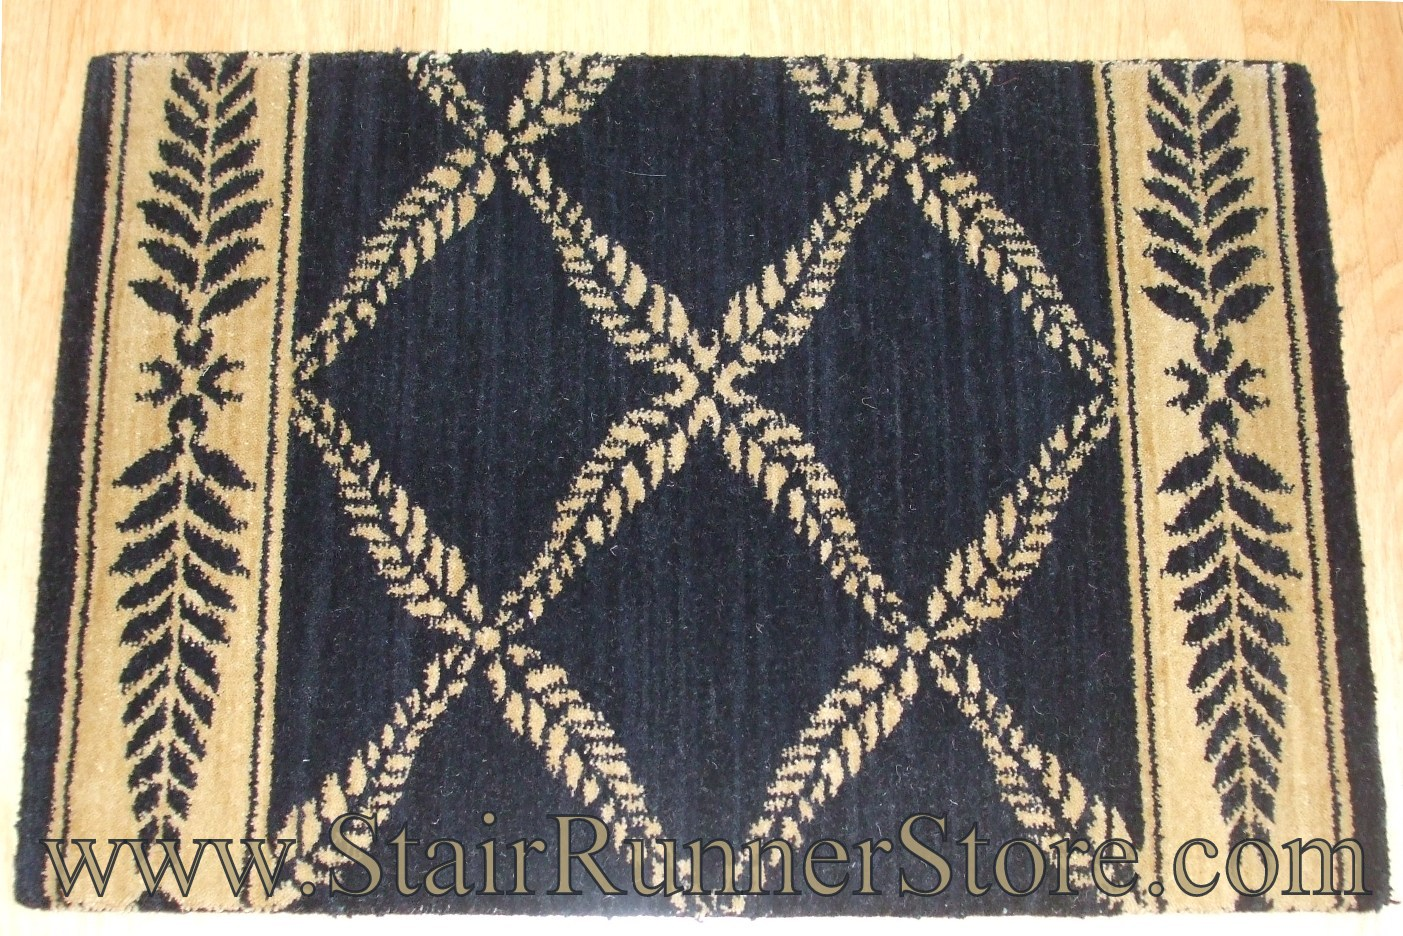 Nourison Chateau Normandy Stair Runner Onyx 36""